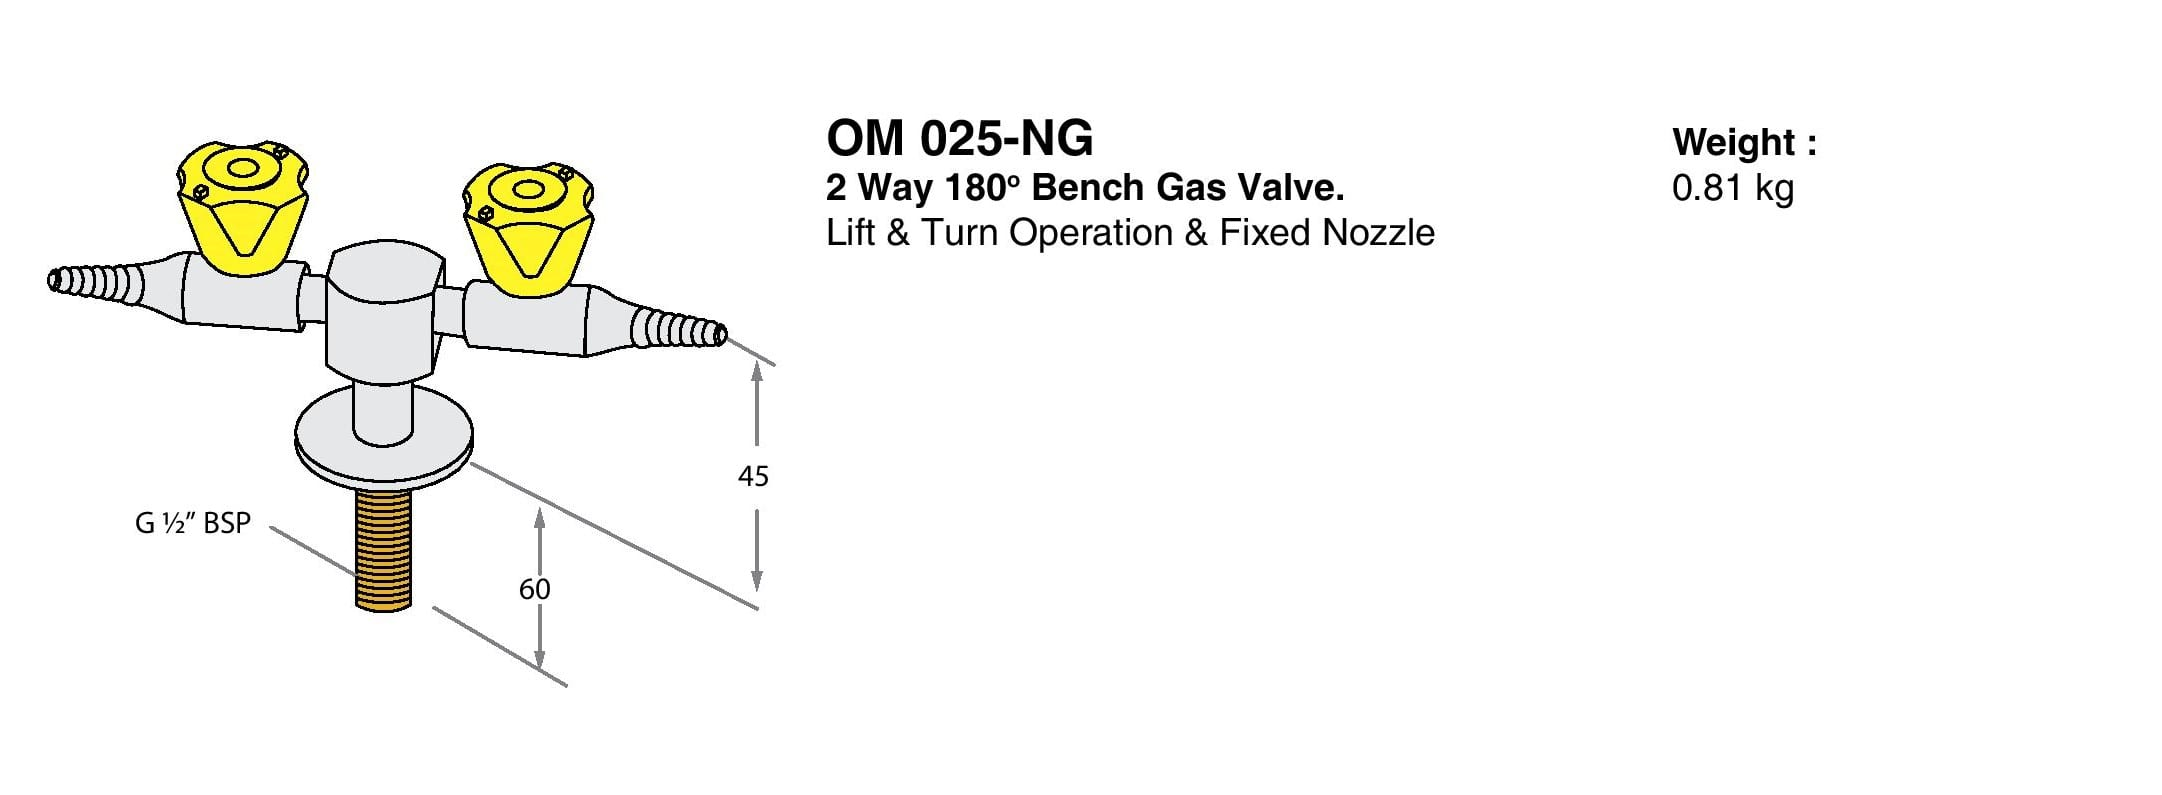 2 Way 180° Bench Gas Valve Drawings